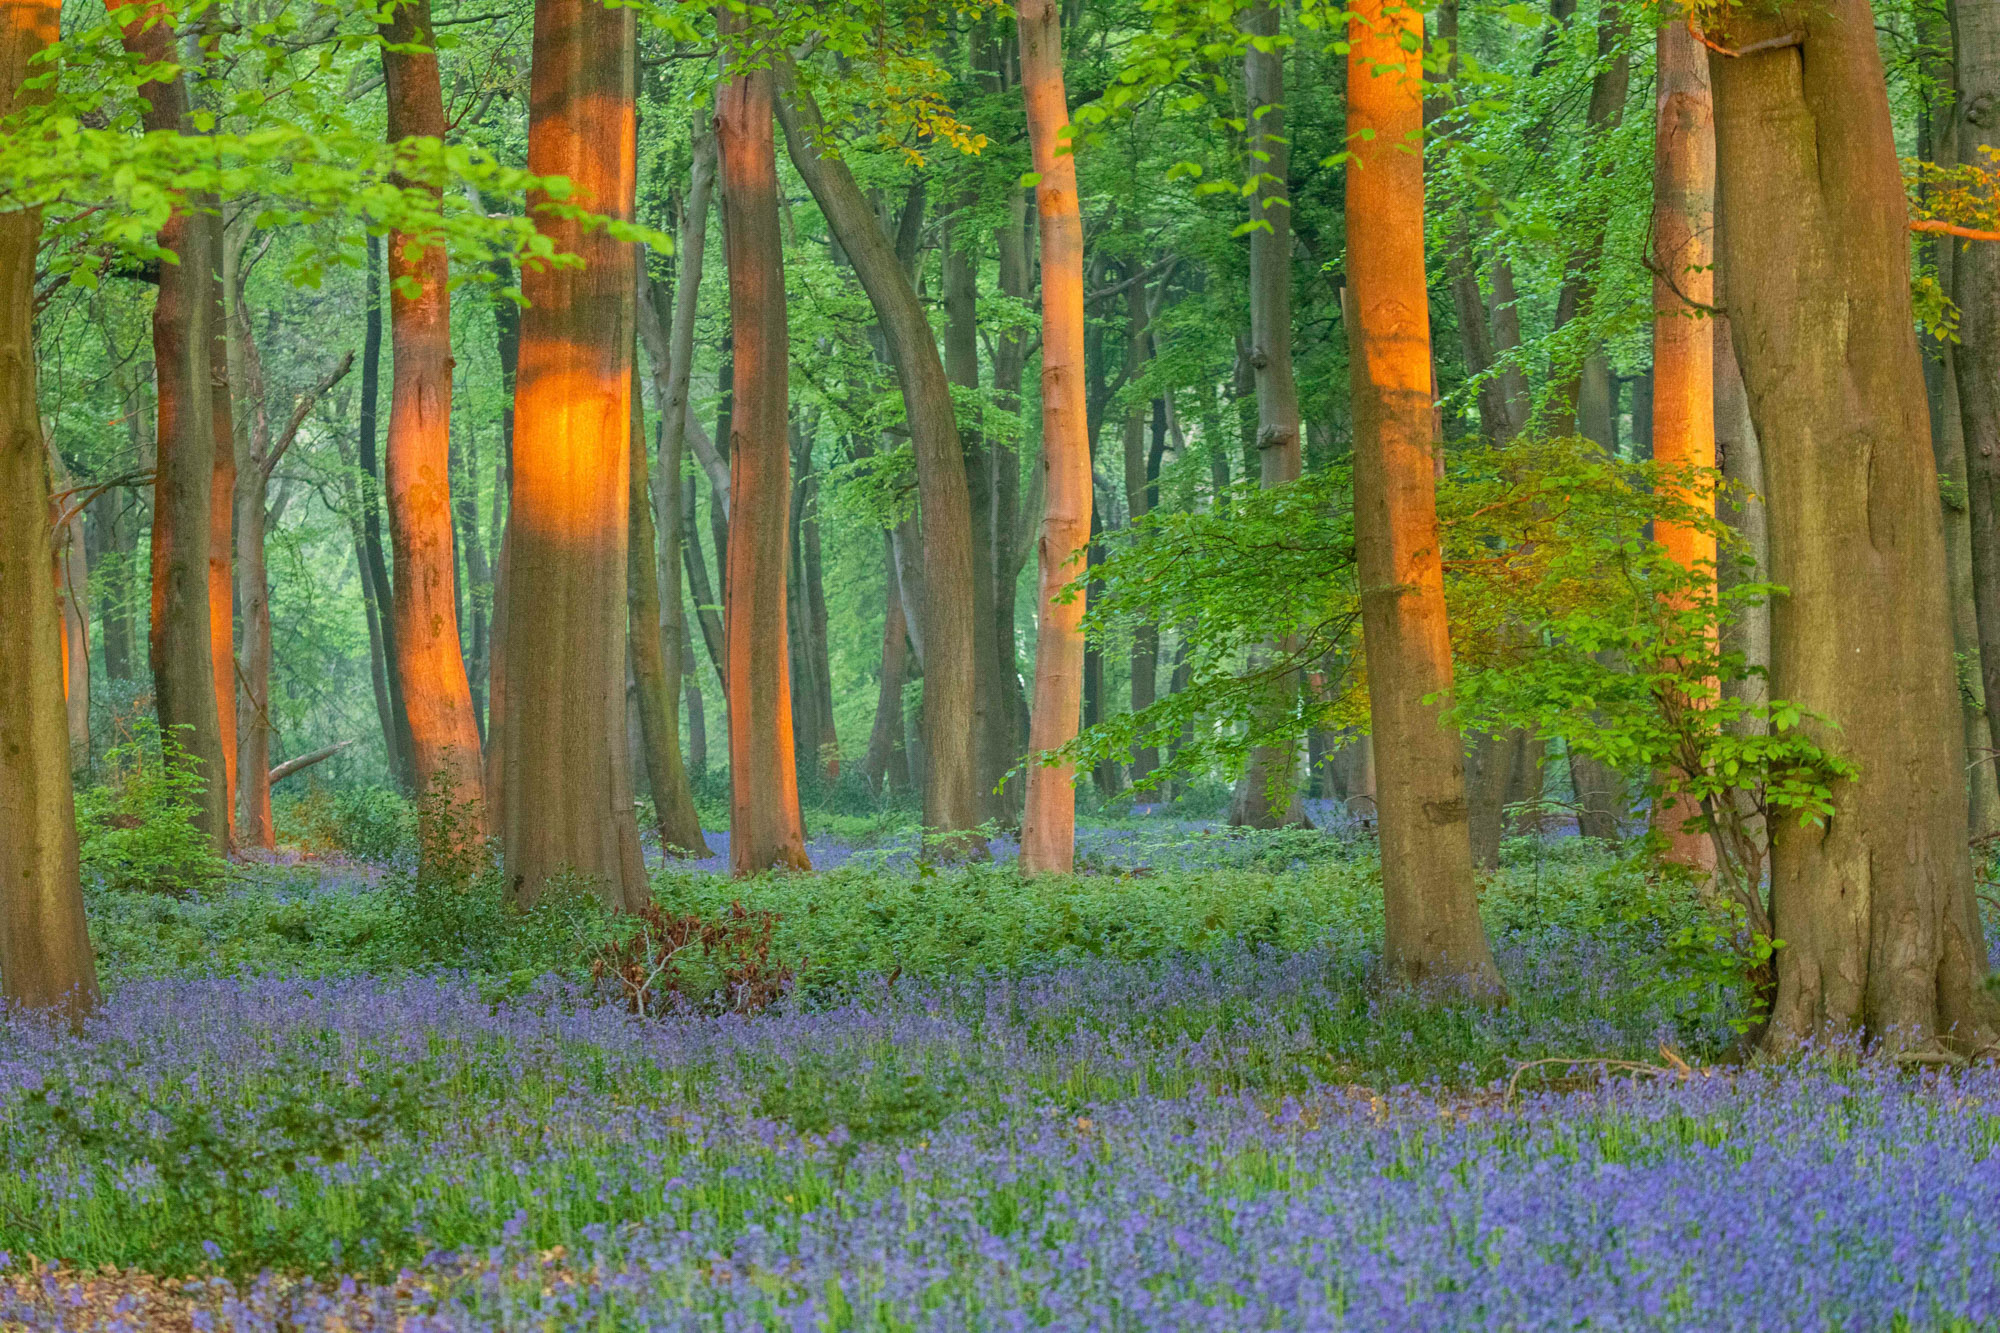 Bluebells in the forest in the Spring